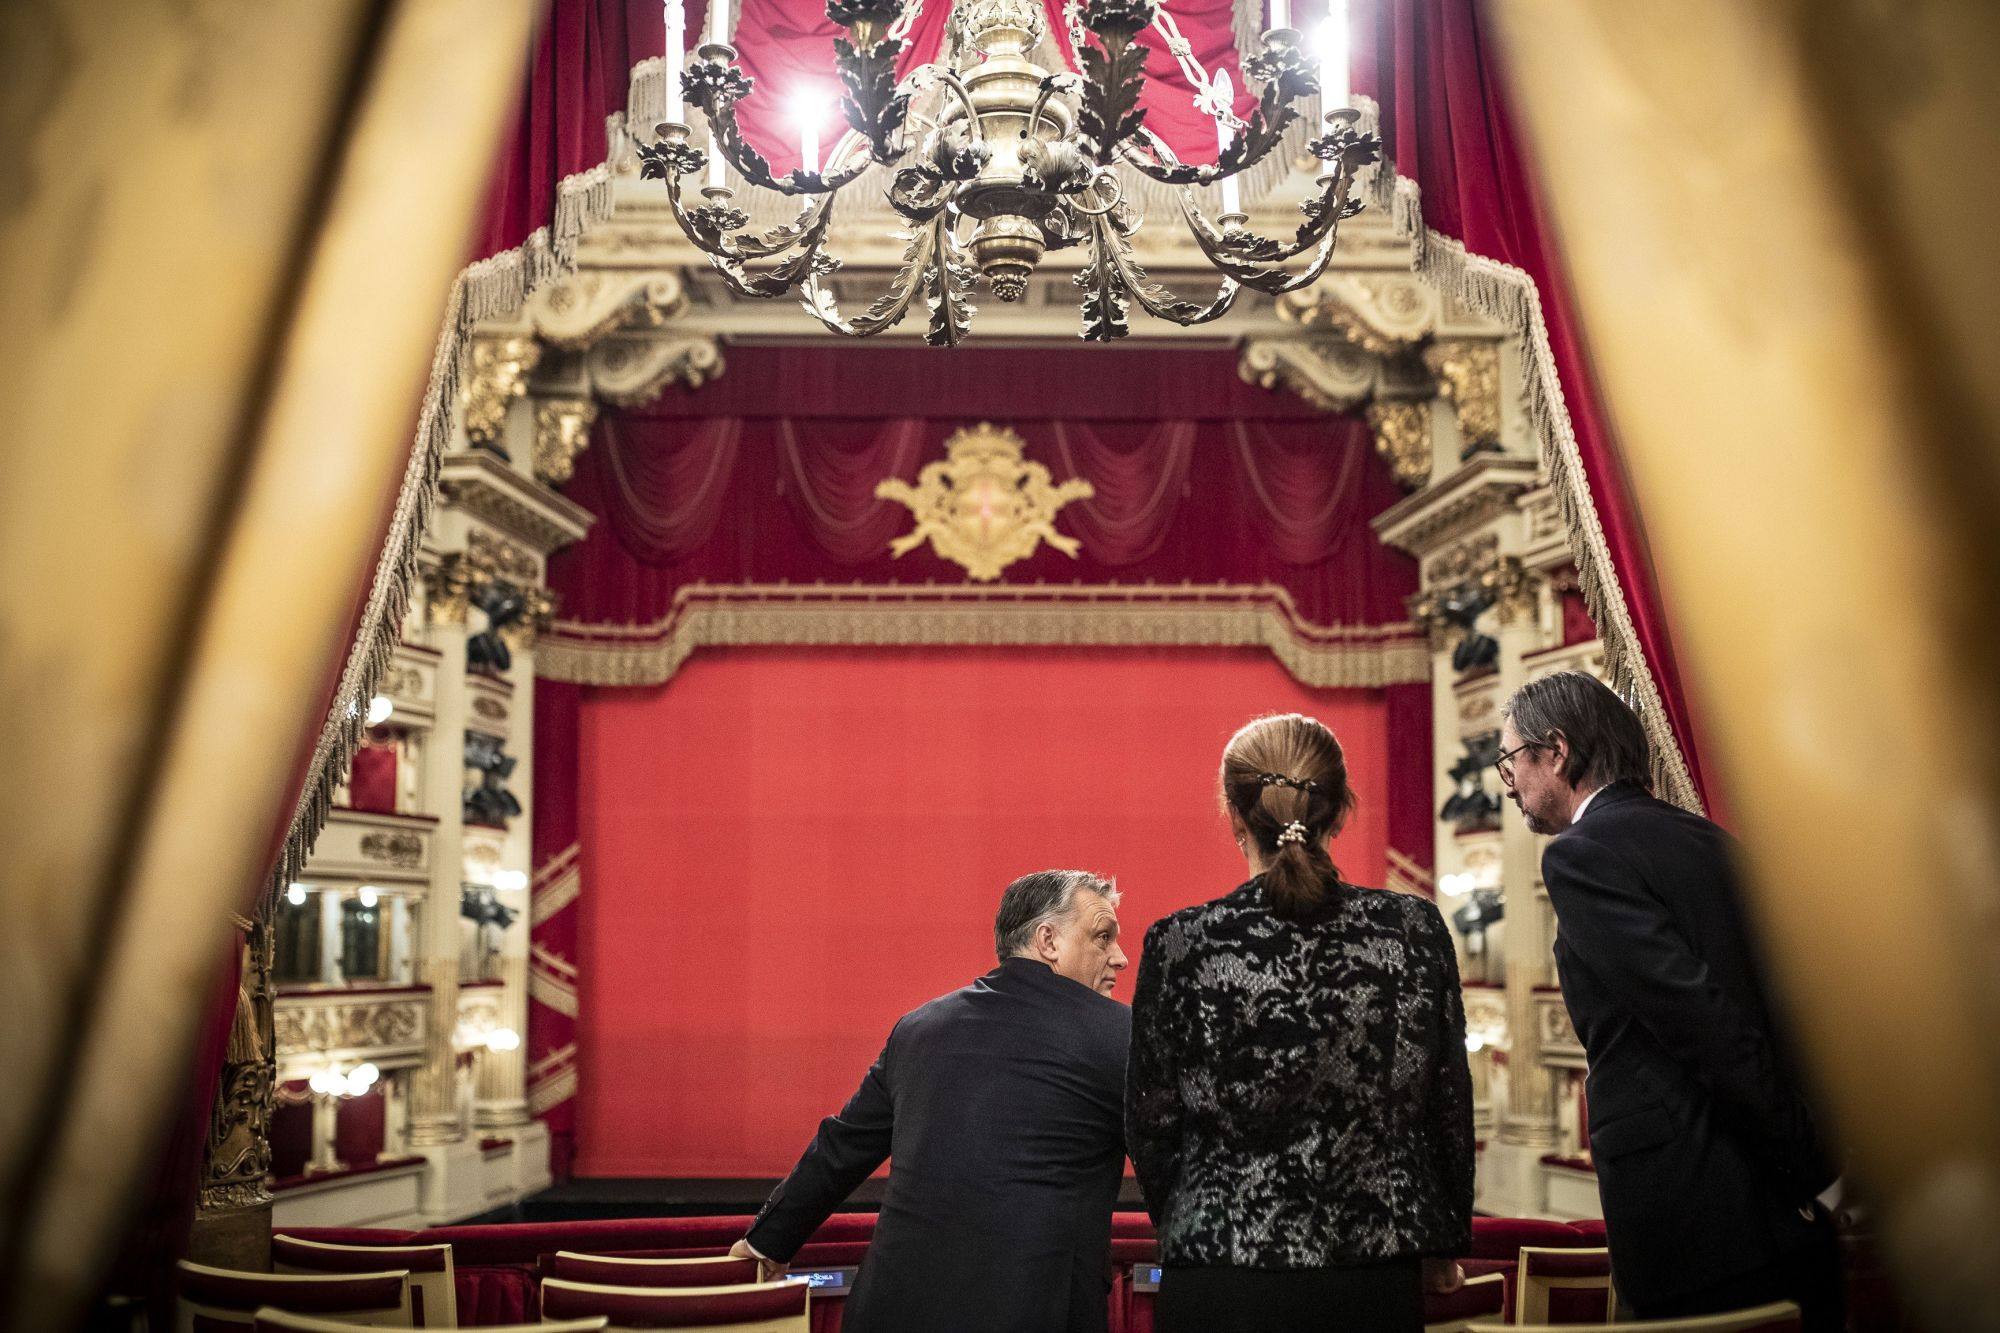 92-Year-Old Kurtág's First Opera Debuts in Scala with Orbán in Attendance post's picture